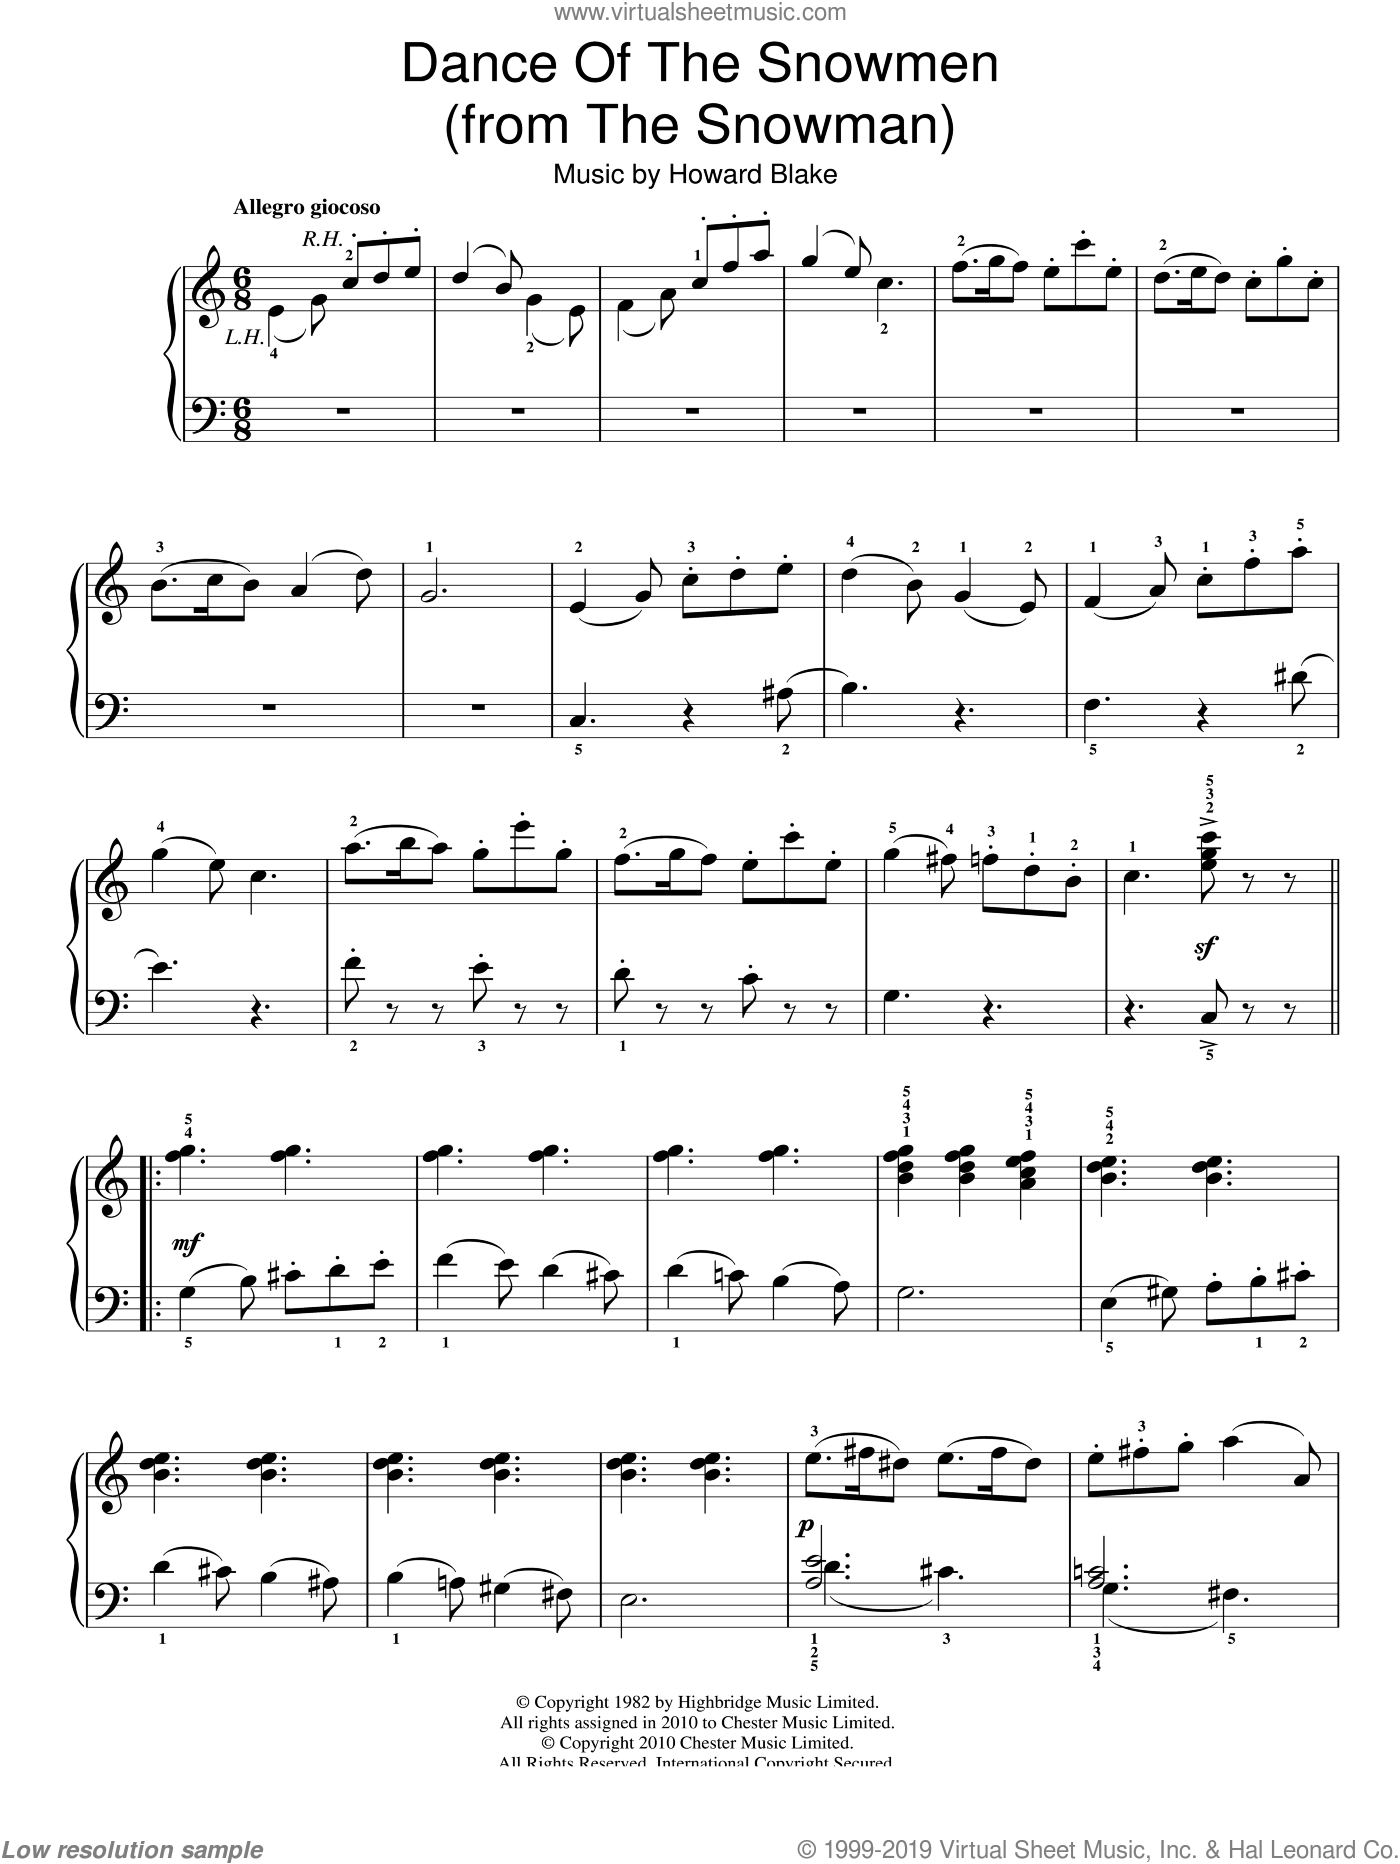 Dance Of The Snowmen sheet music for piano solo by Howard Blake and The Snowman (Movie), easy skill level